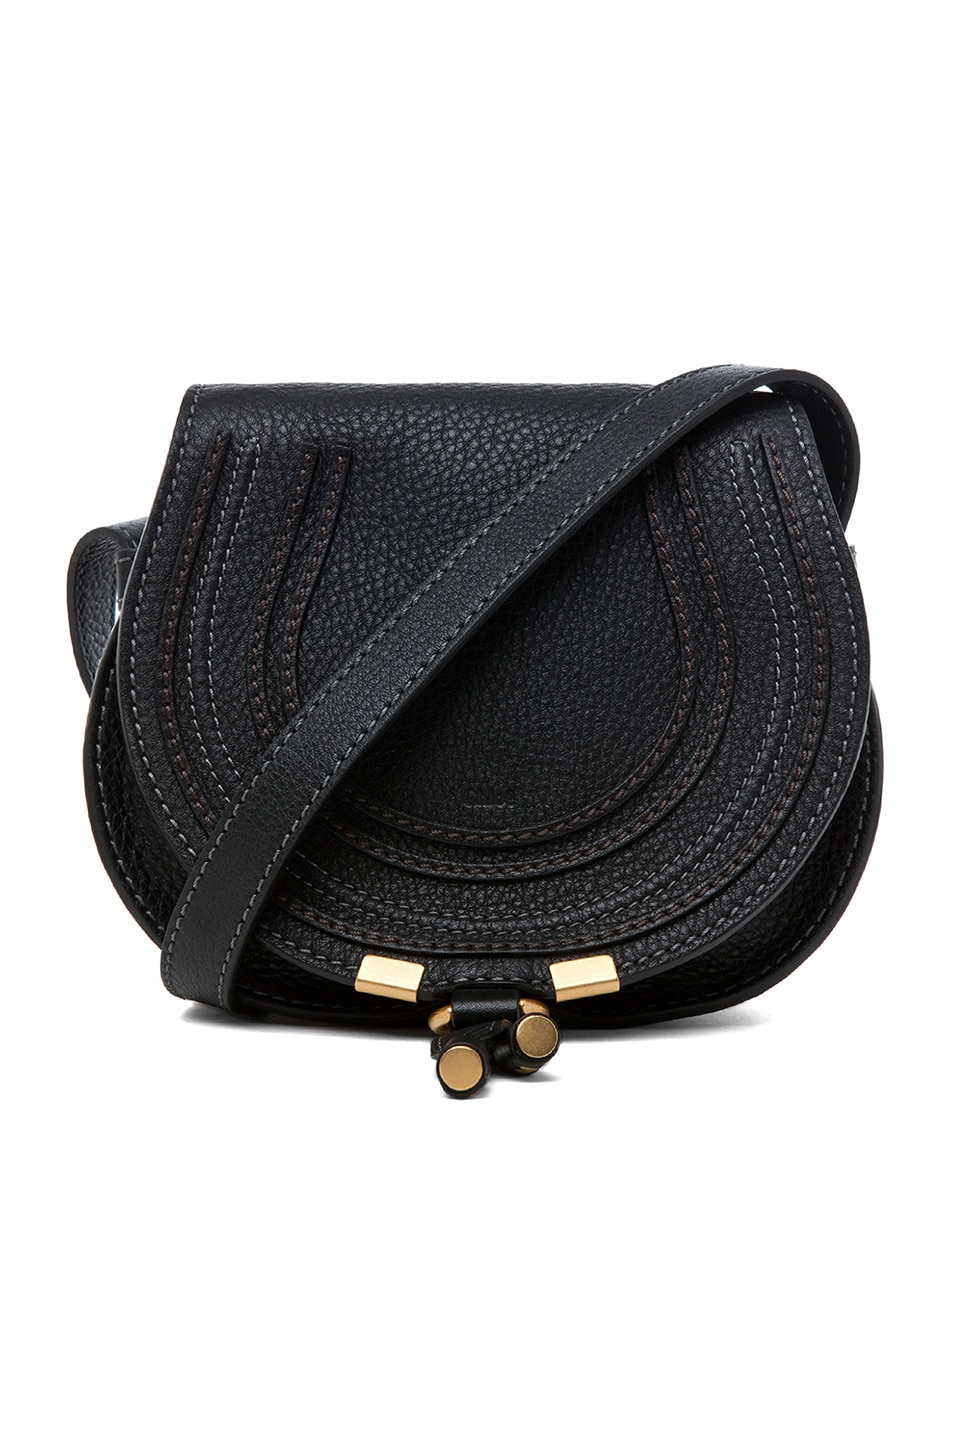 Image 1 of Chloe Small Marcie Grained Calfskin Saddle Bag in Black